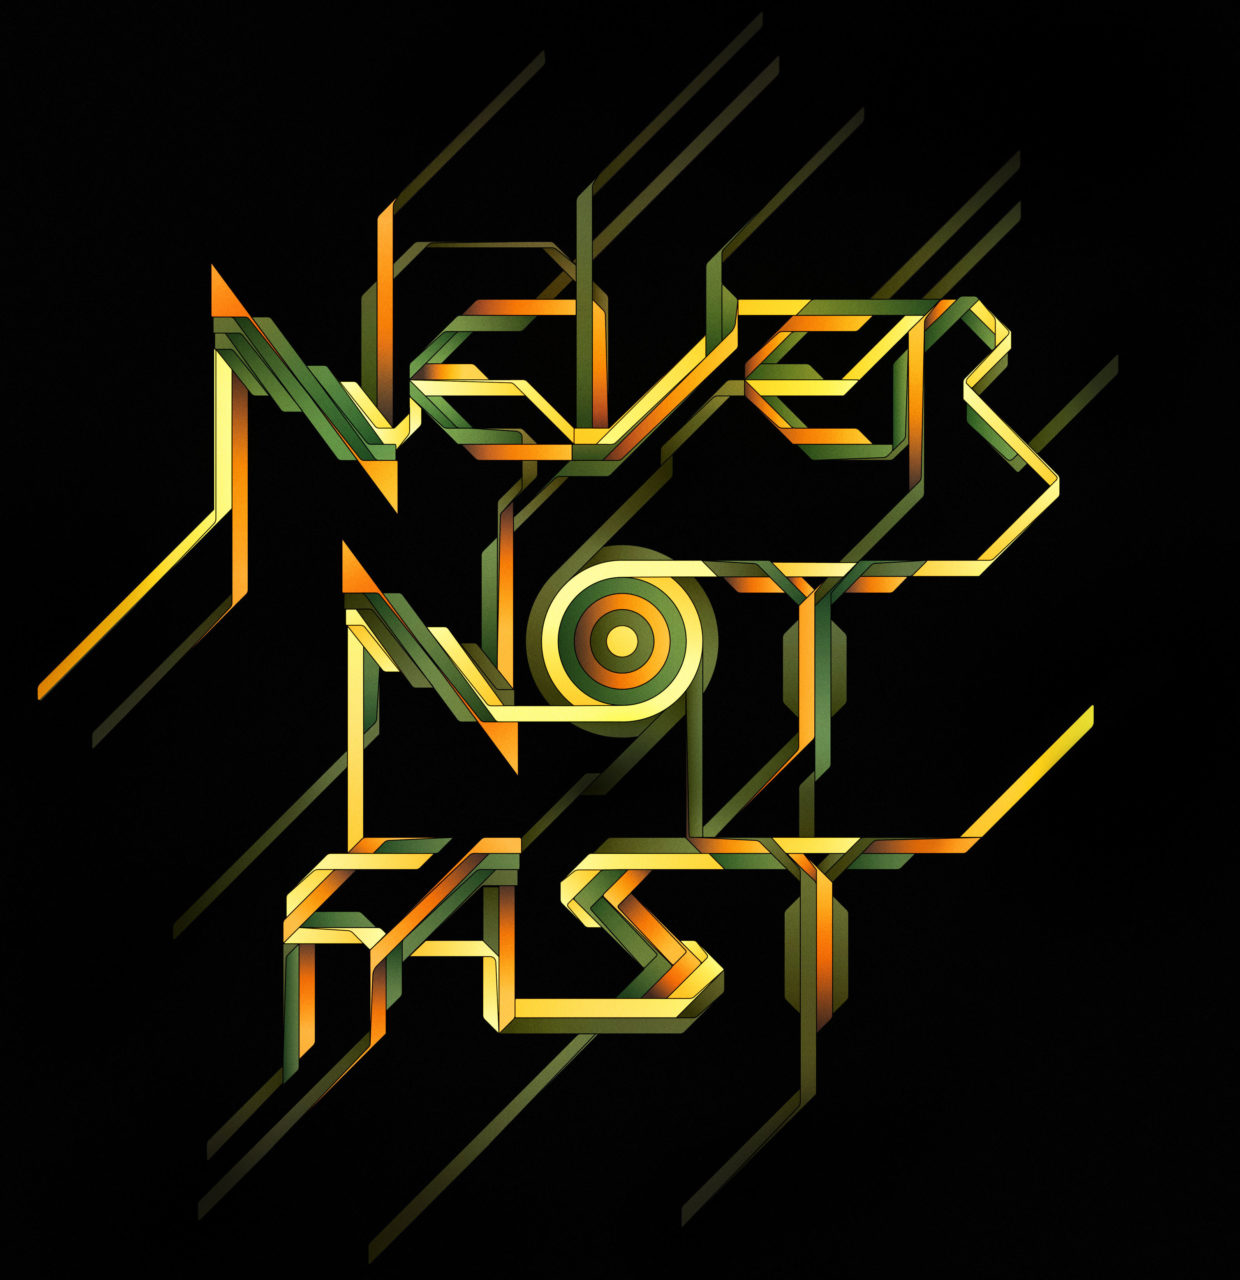 'Never Not Fast' for Nike